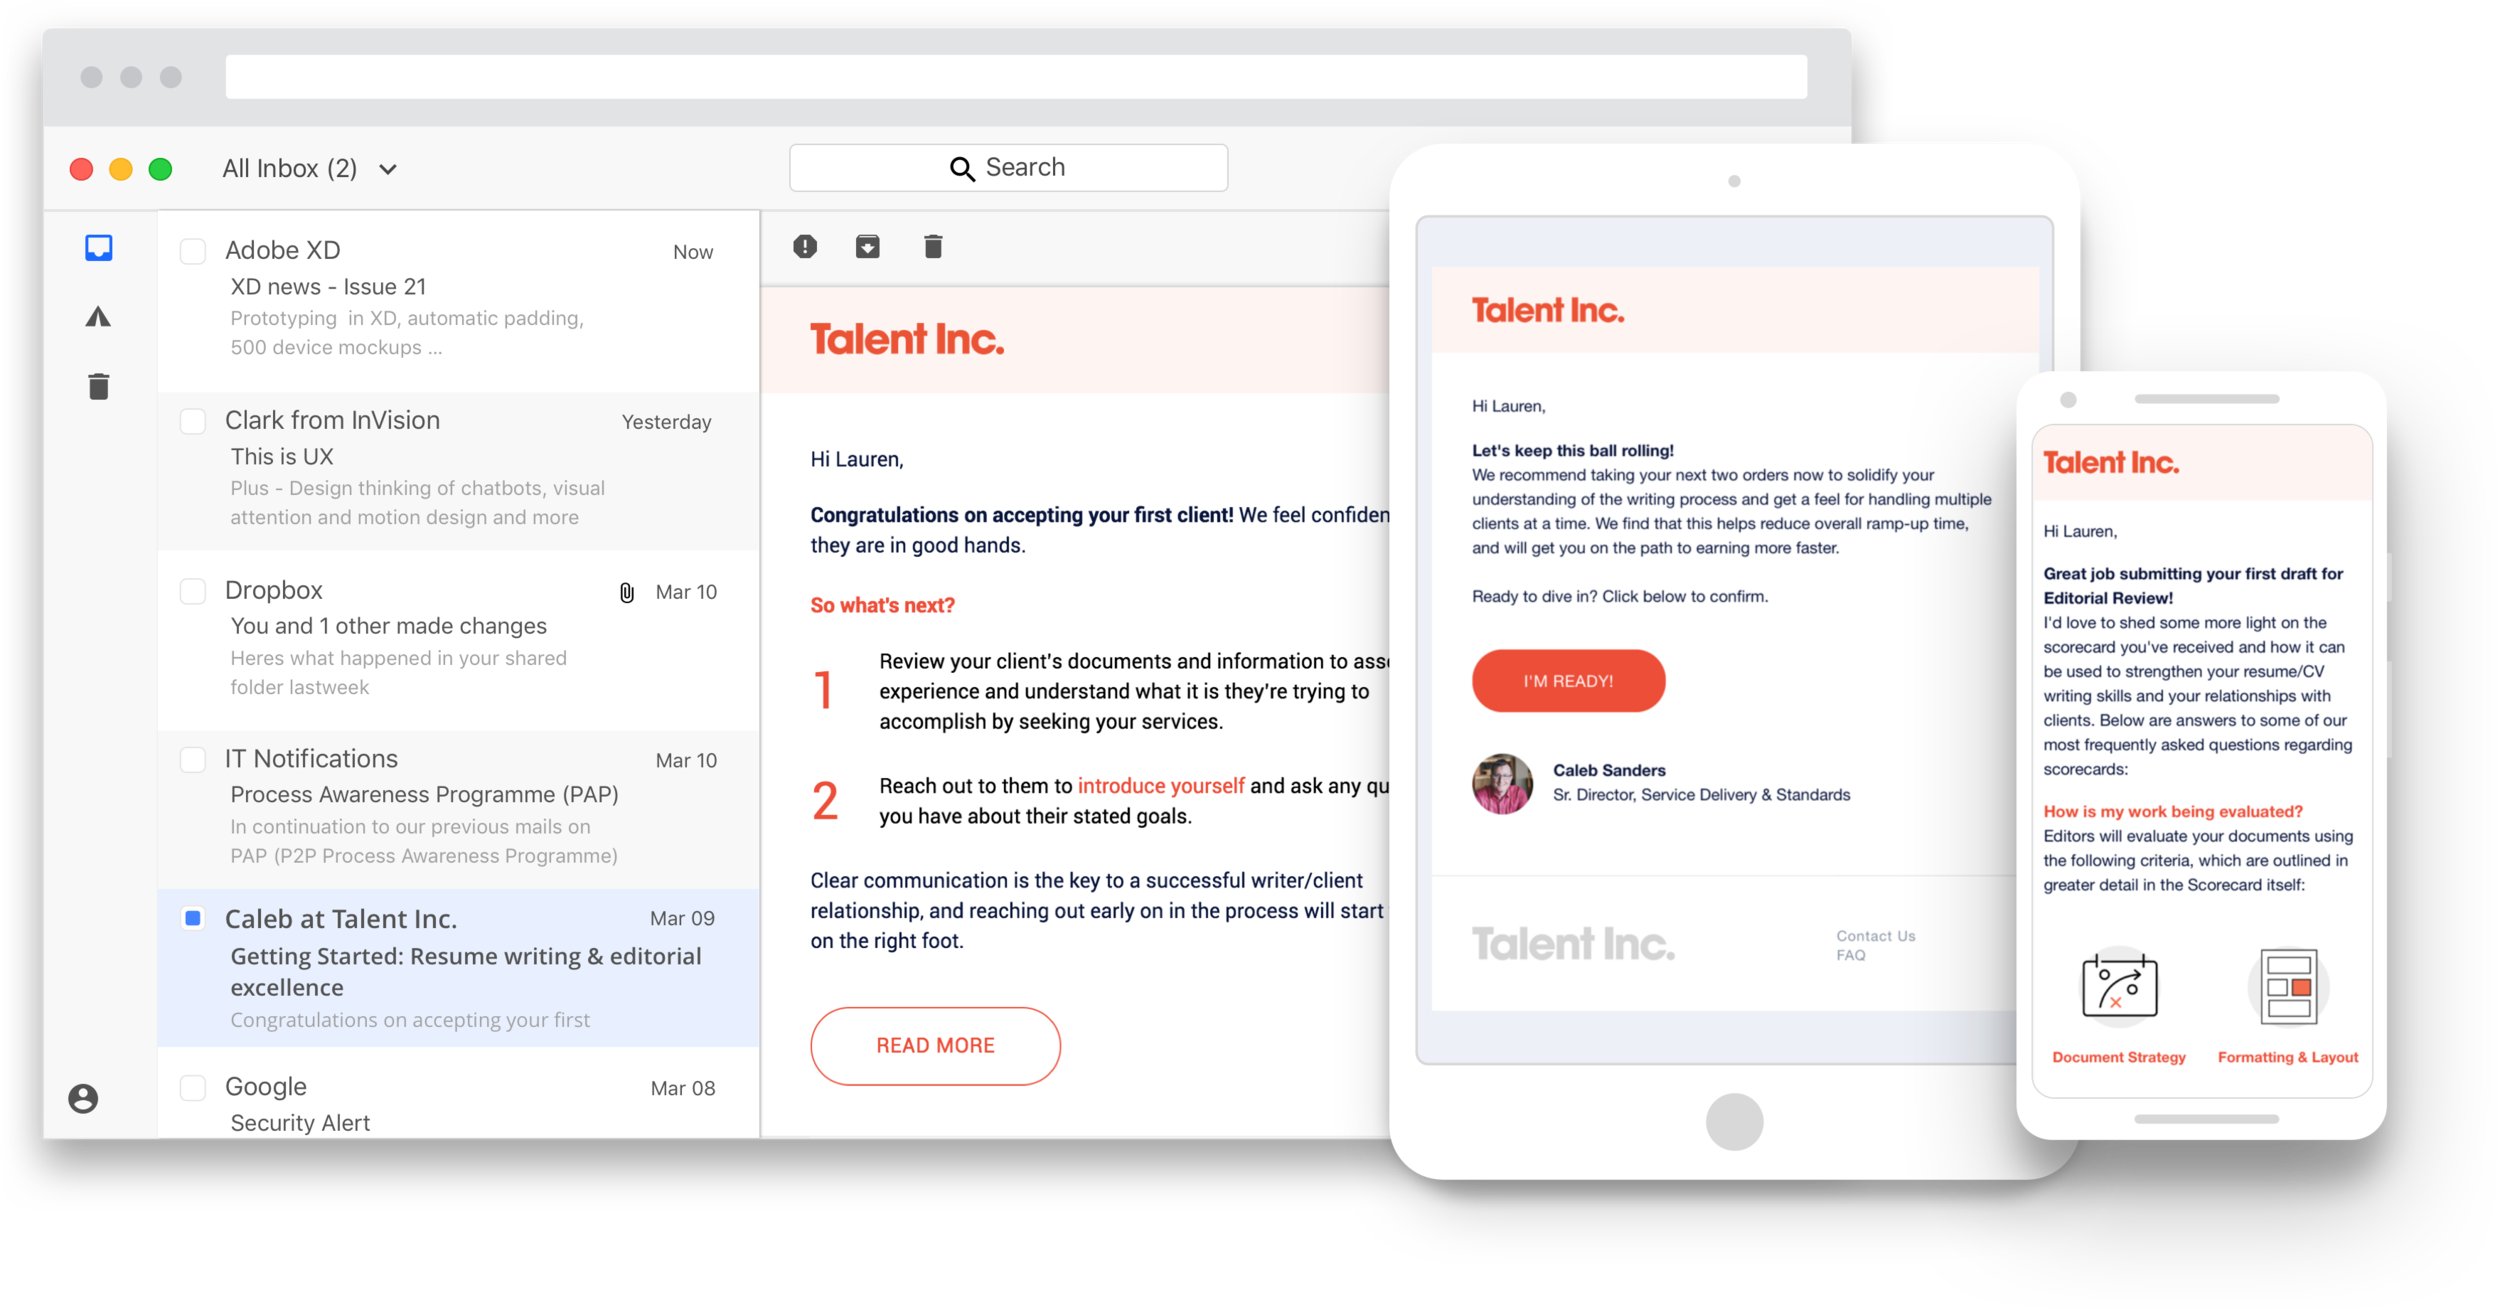 Humanizing the new hire experience with responsive, educational, event-driven emails.